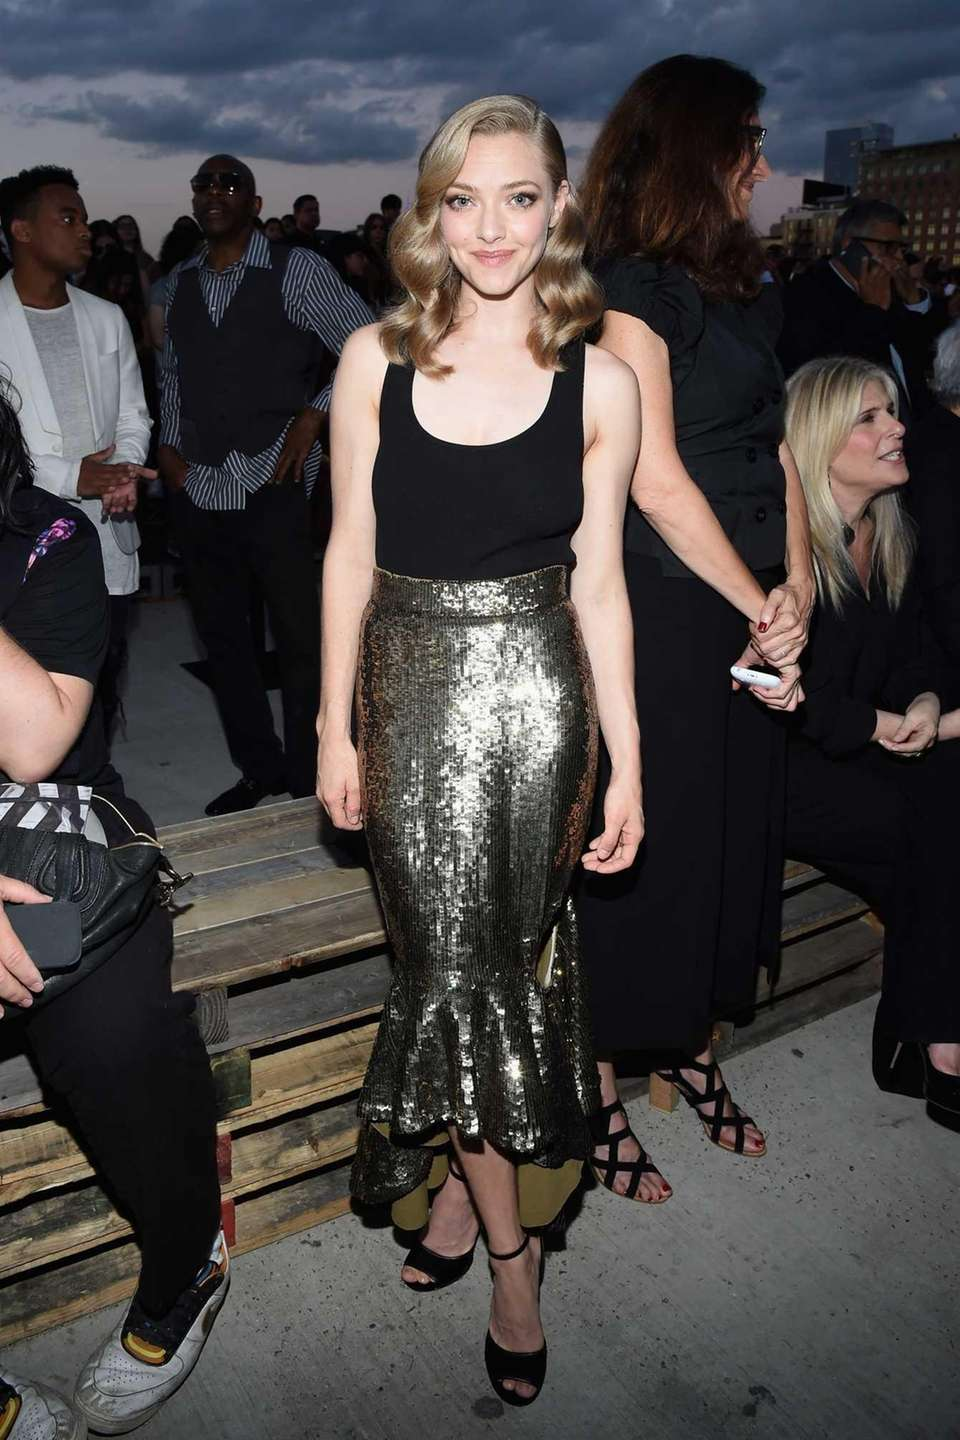 Amanda Seyfried attends the Givenchy fashion show during